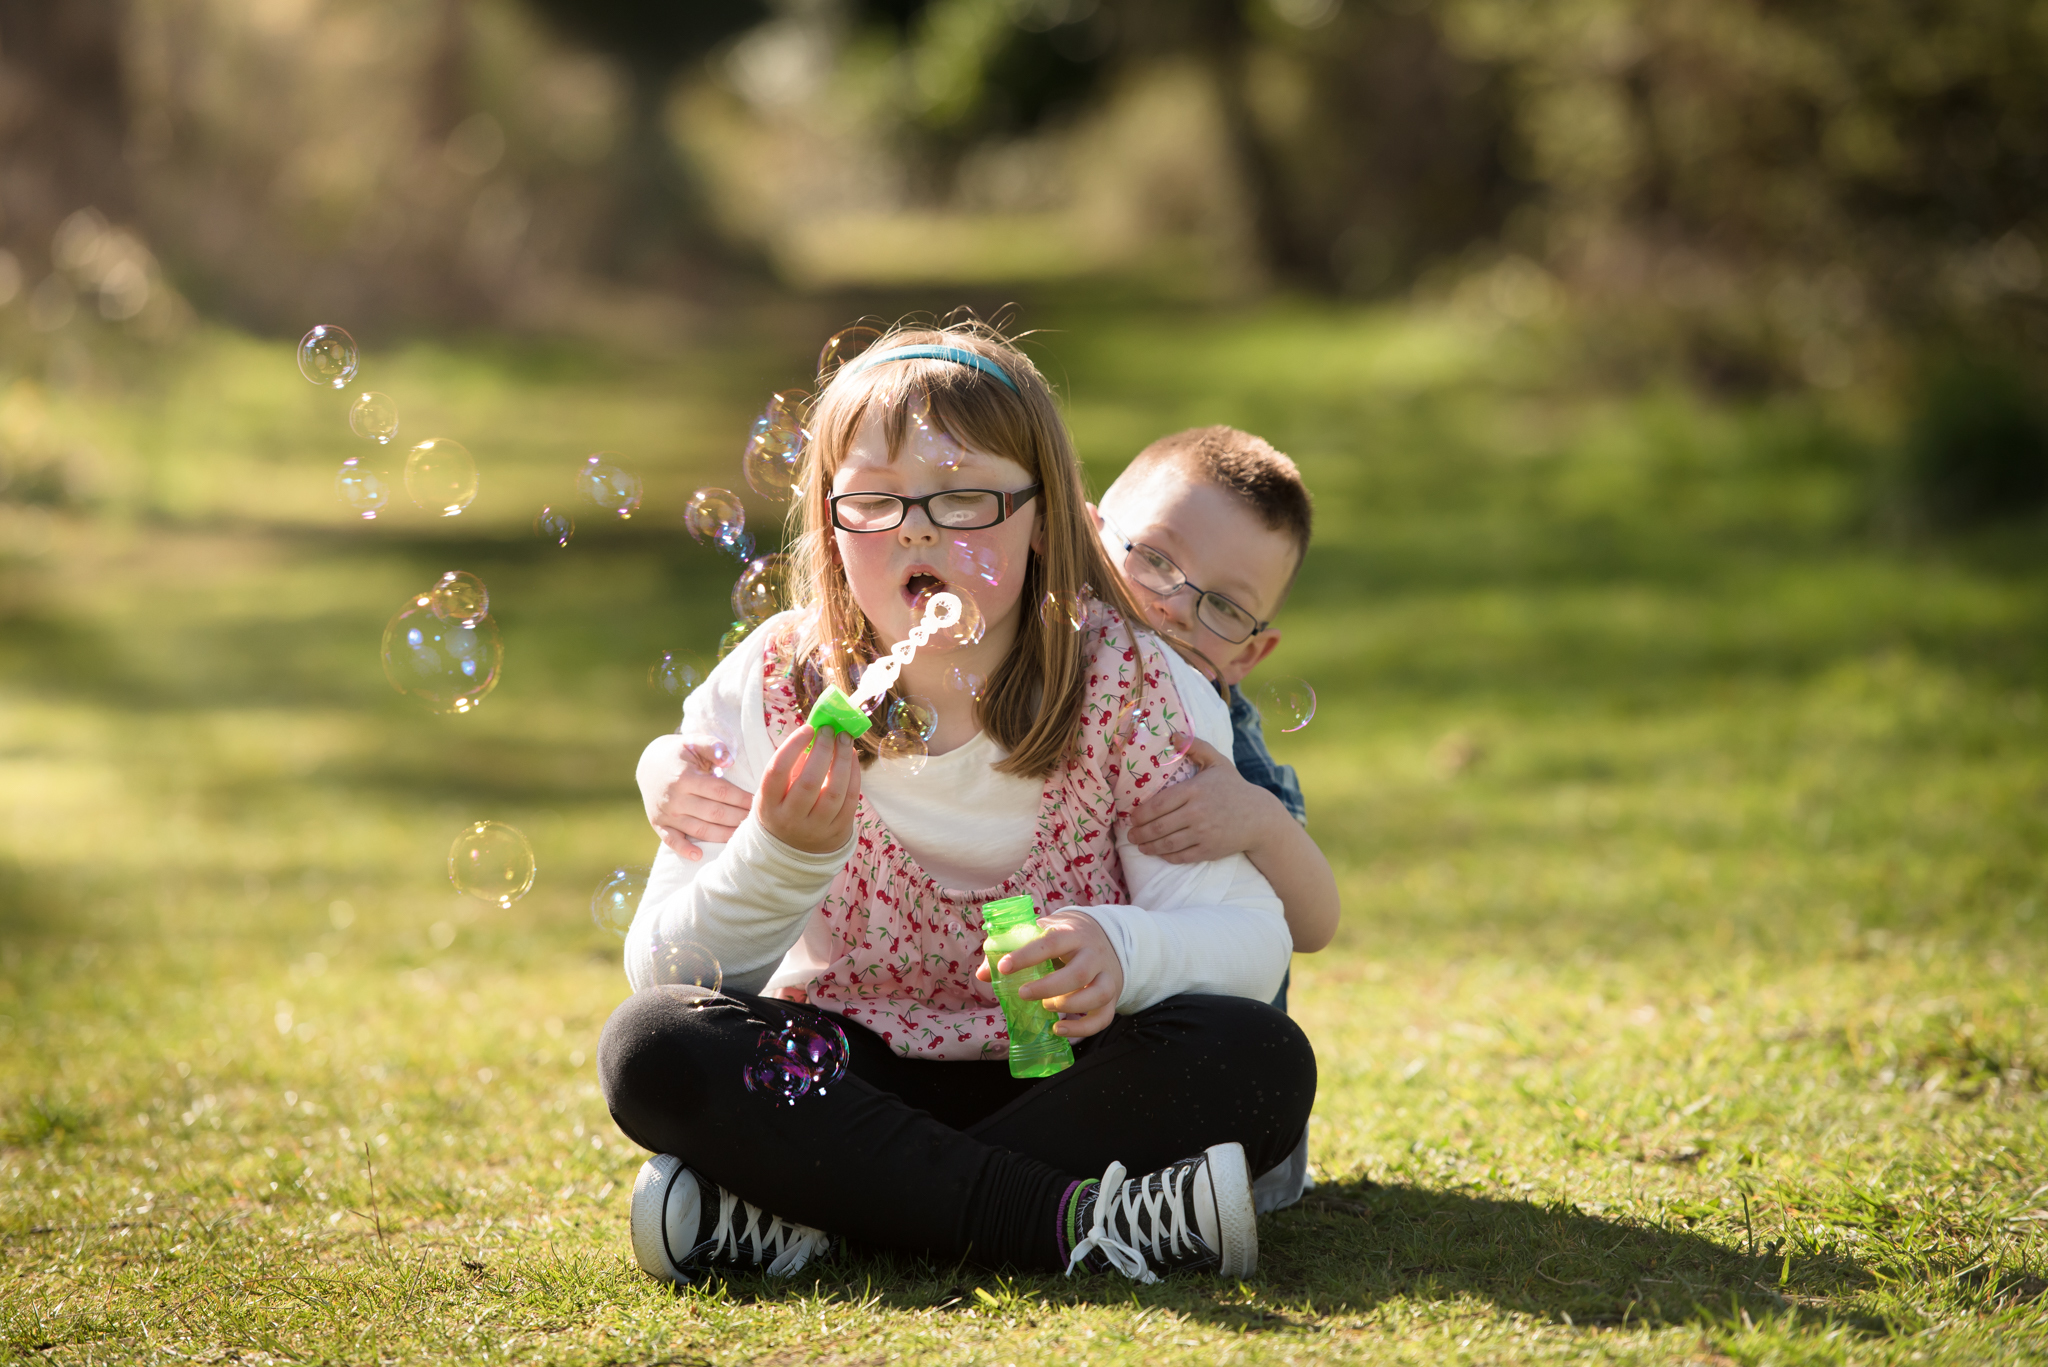 Family photographer Edinburgh - 8 year old girl and 5 year old brother sitting blowing bubbles in the evening sunshine at Lauriston Castle, Edinburgh